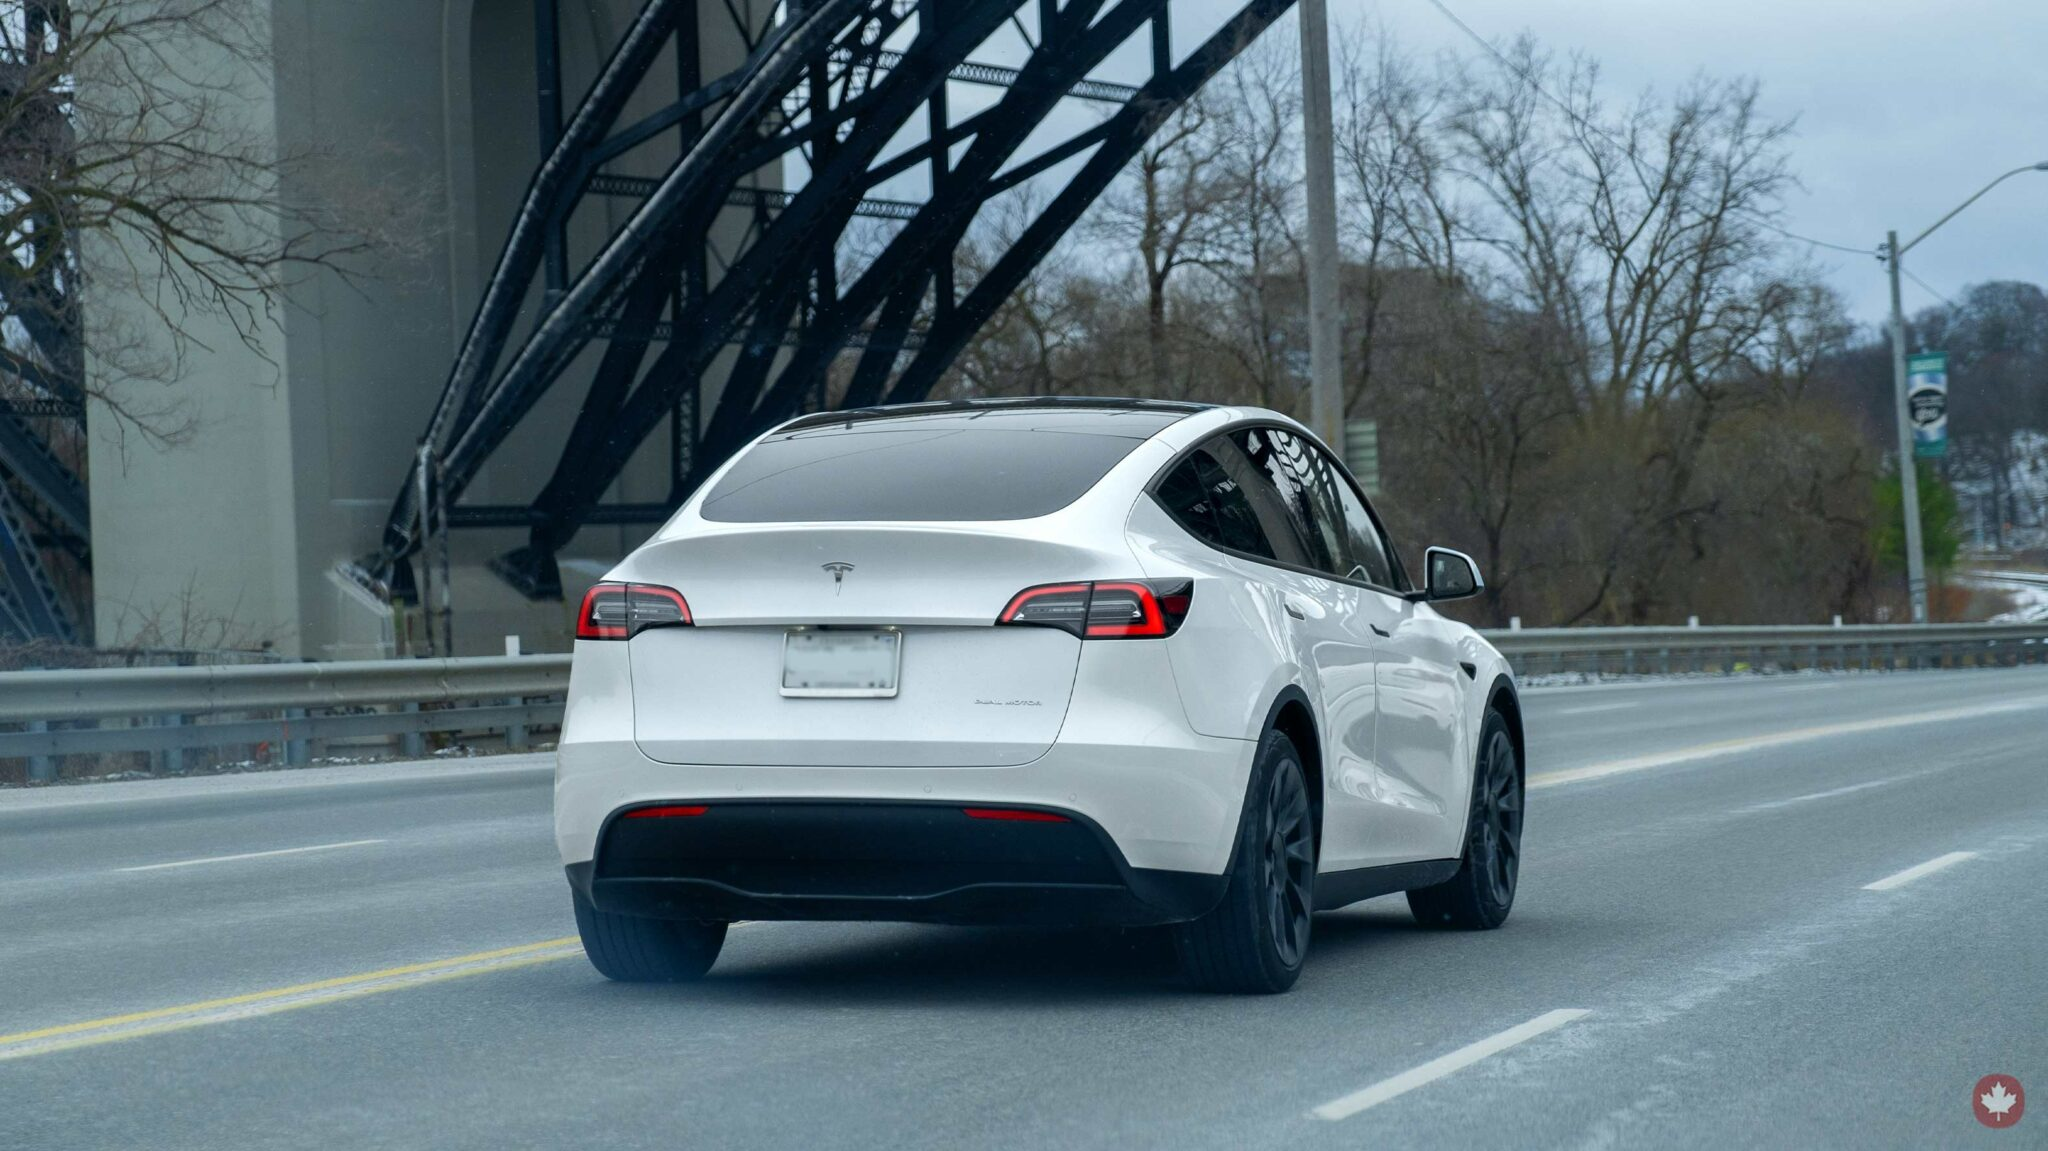 Zero-emission vehicles took up 3.7 percent of Canadian new car market in Q3 2020